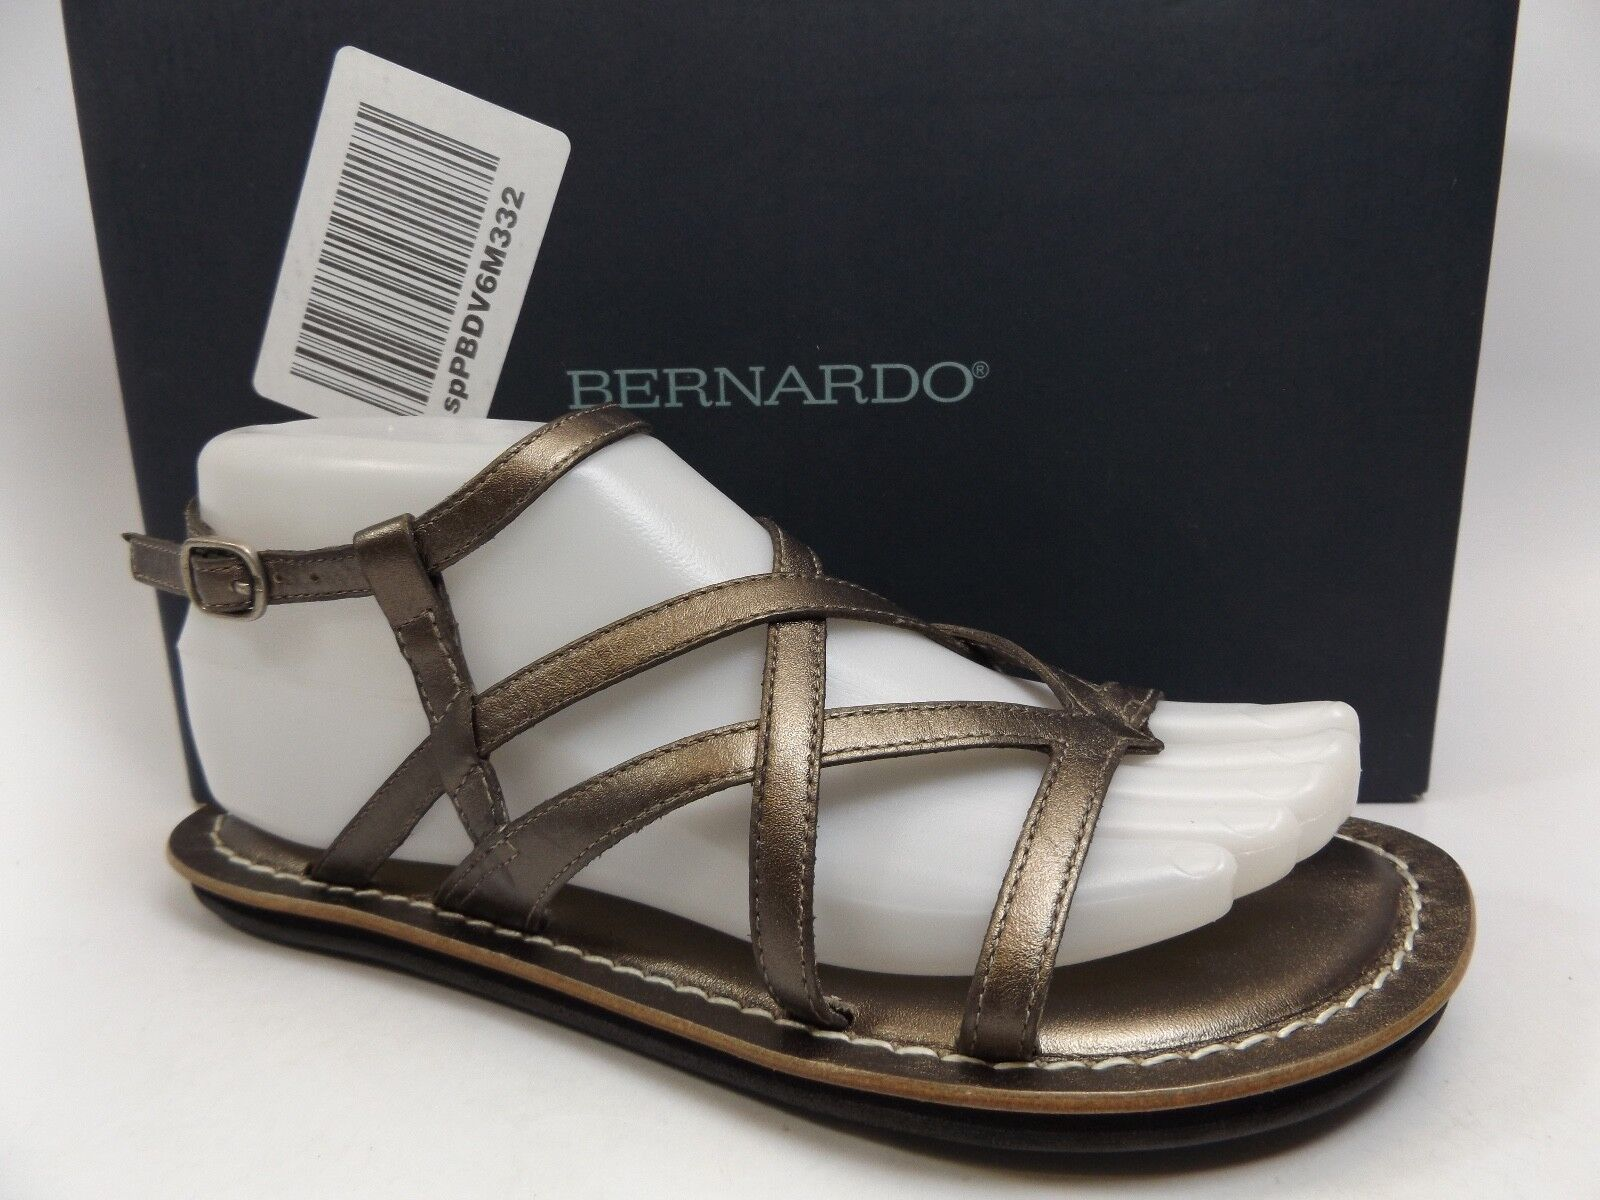 Bernardo Cara PEWTER ANTIQUE CALF Flats Casual Sandals Women SZ 6.5 M NEW D8101